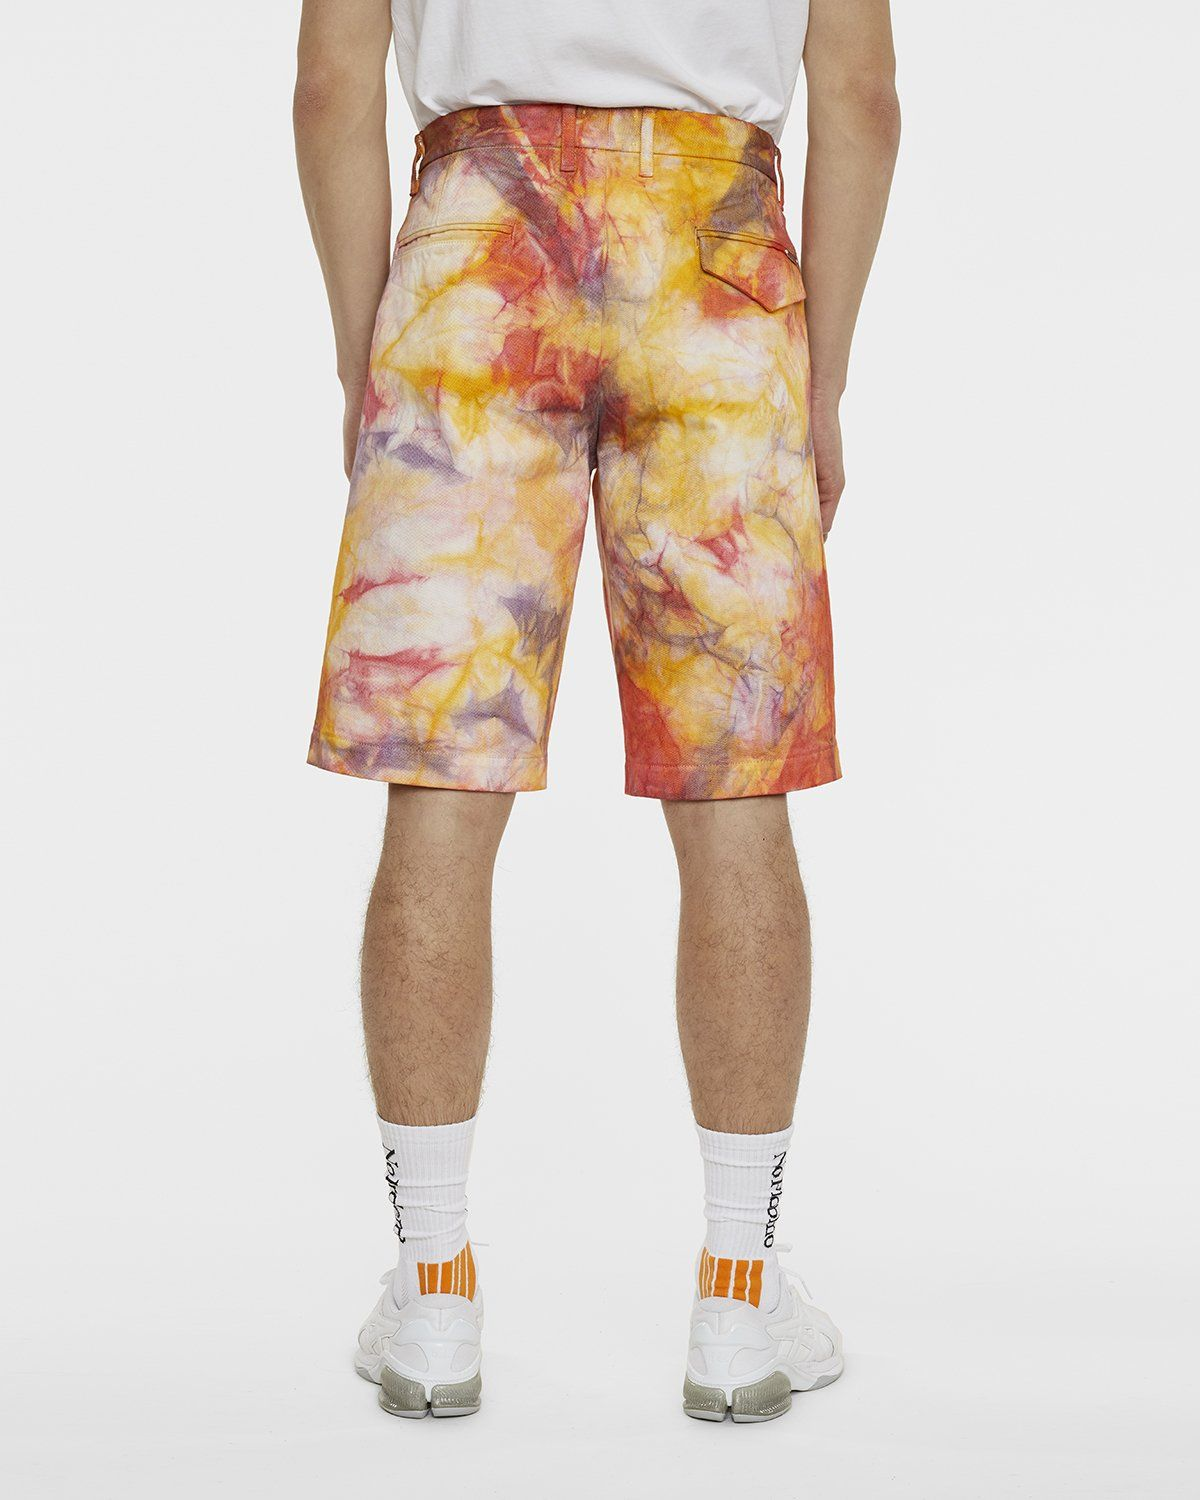 Aries - Tie Dye Chino Shorts Multicolor - Image 5